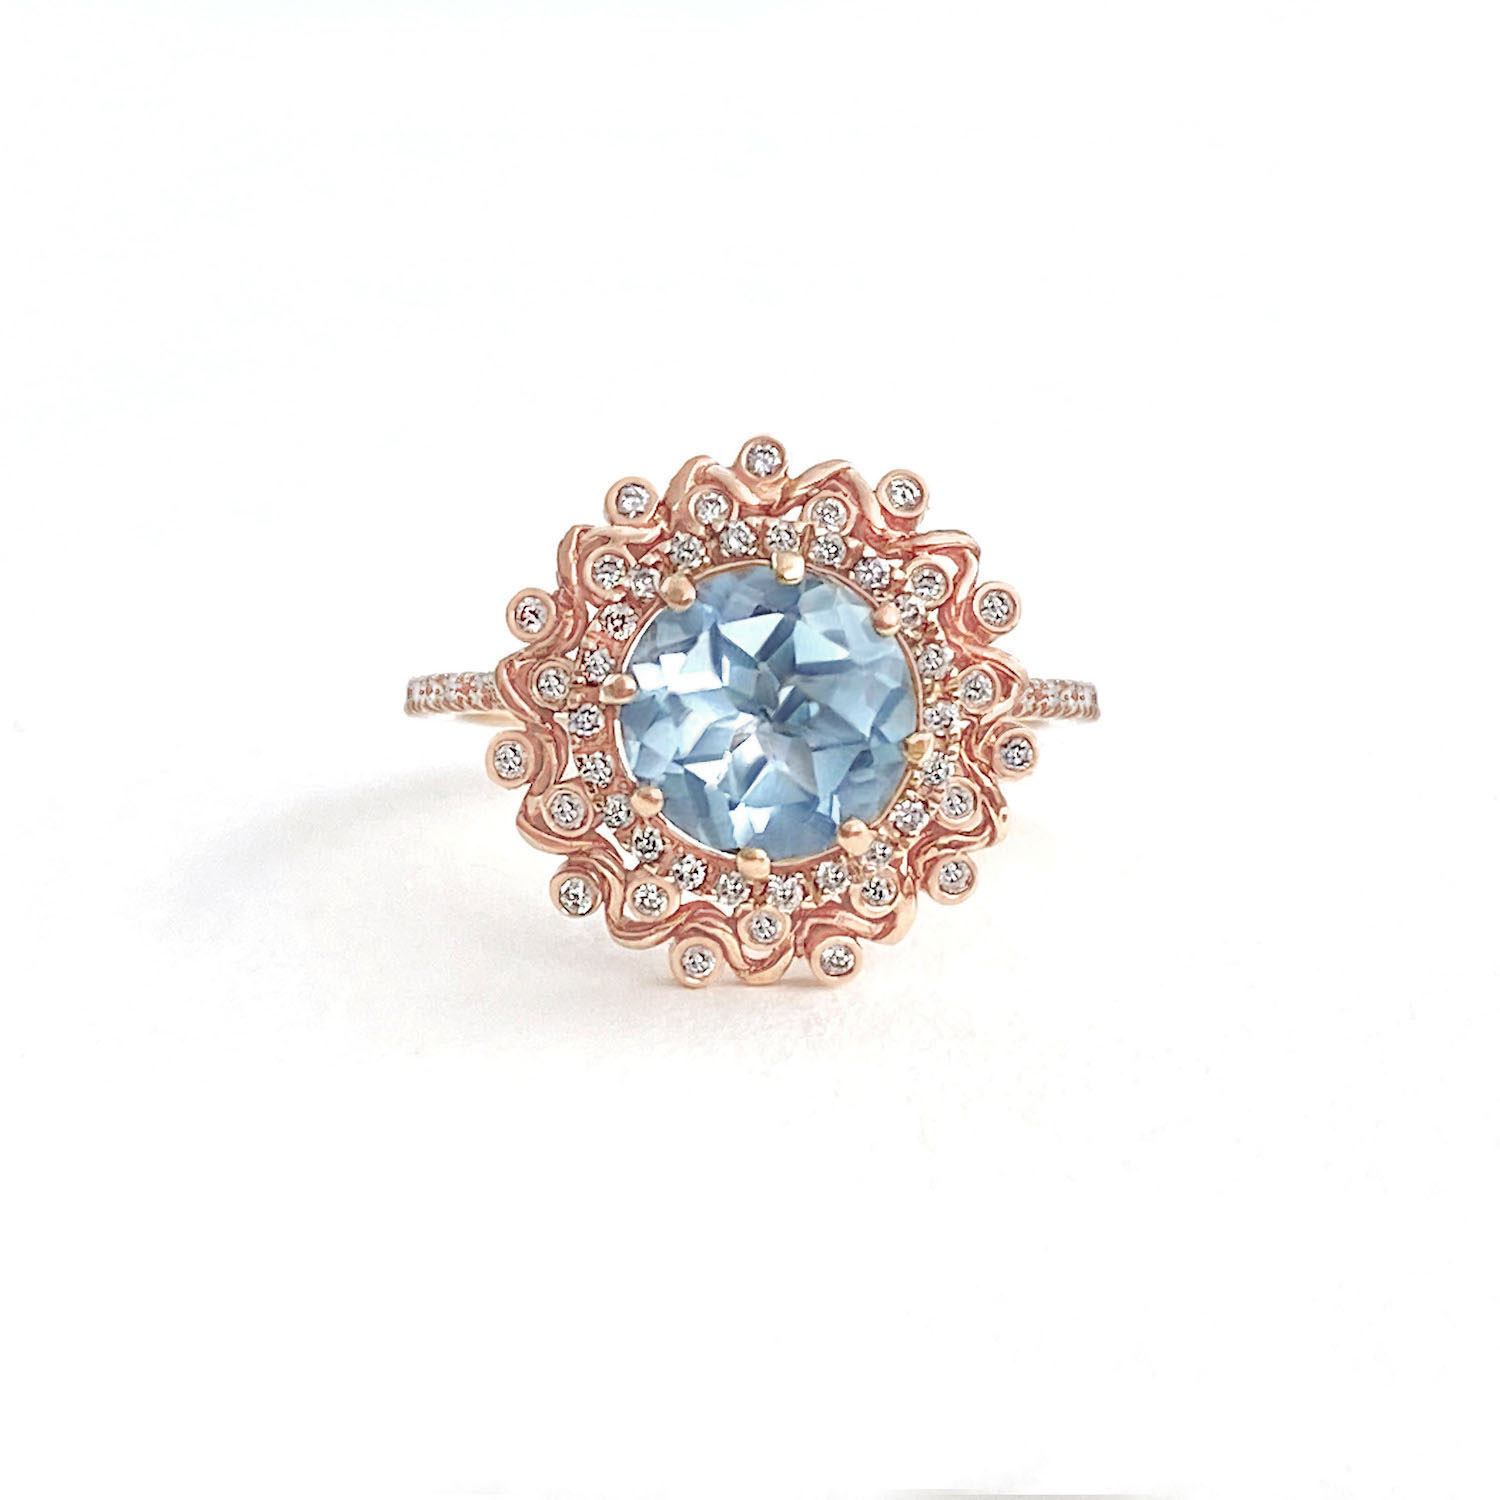 double-halo-sky-blue-topaz-diamond-cocktail-ring-JeweLyrie_4744RG